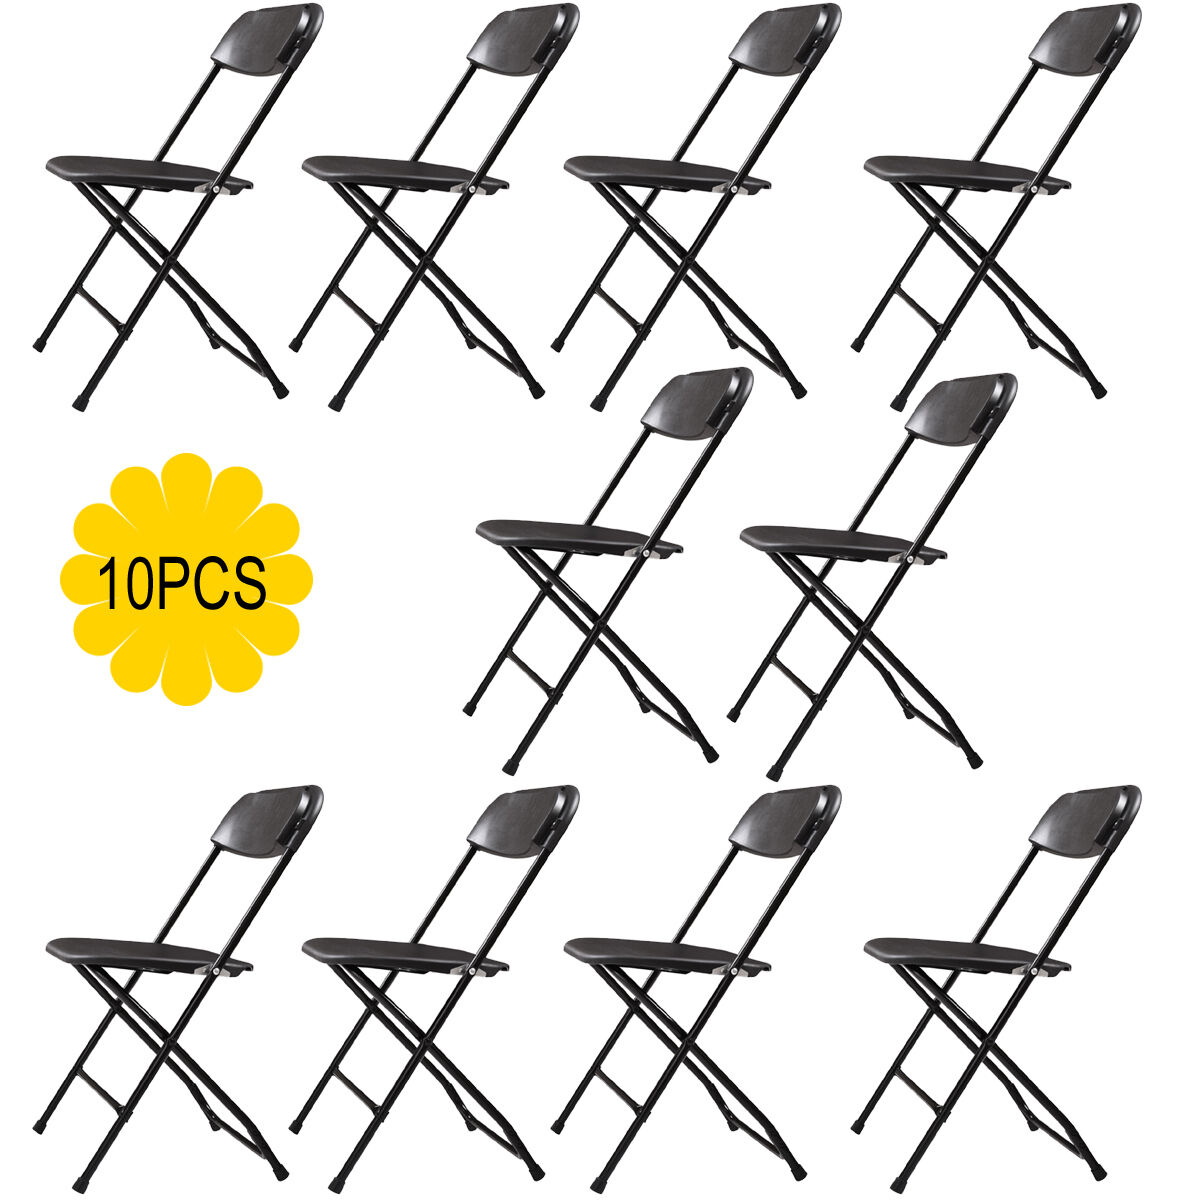 Set of 10 Folding Chairs Heavy Duty Steel Frame Plastic Comm